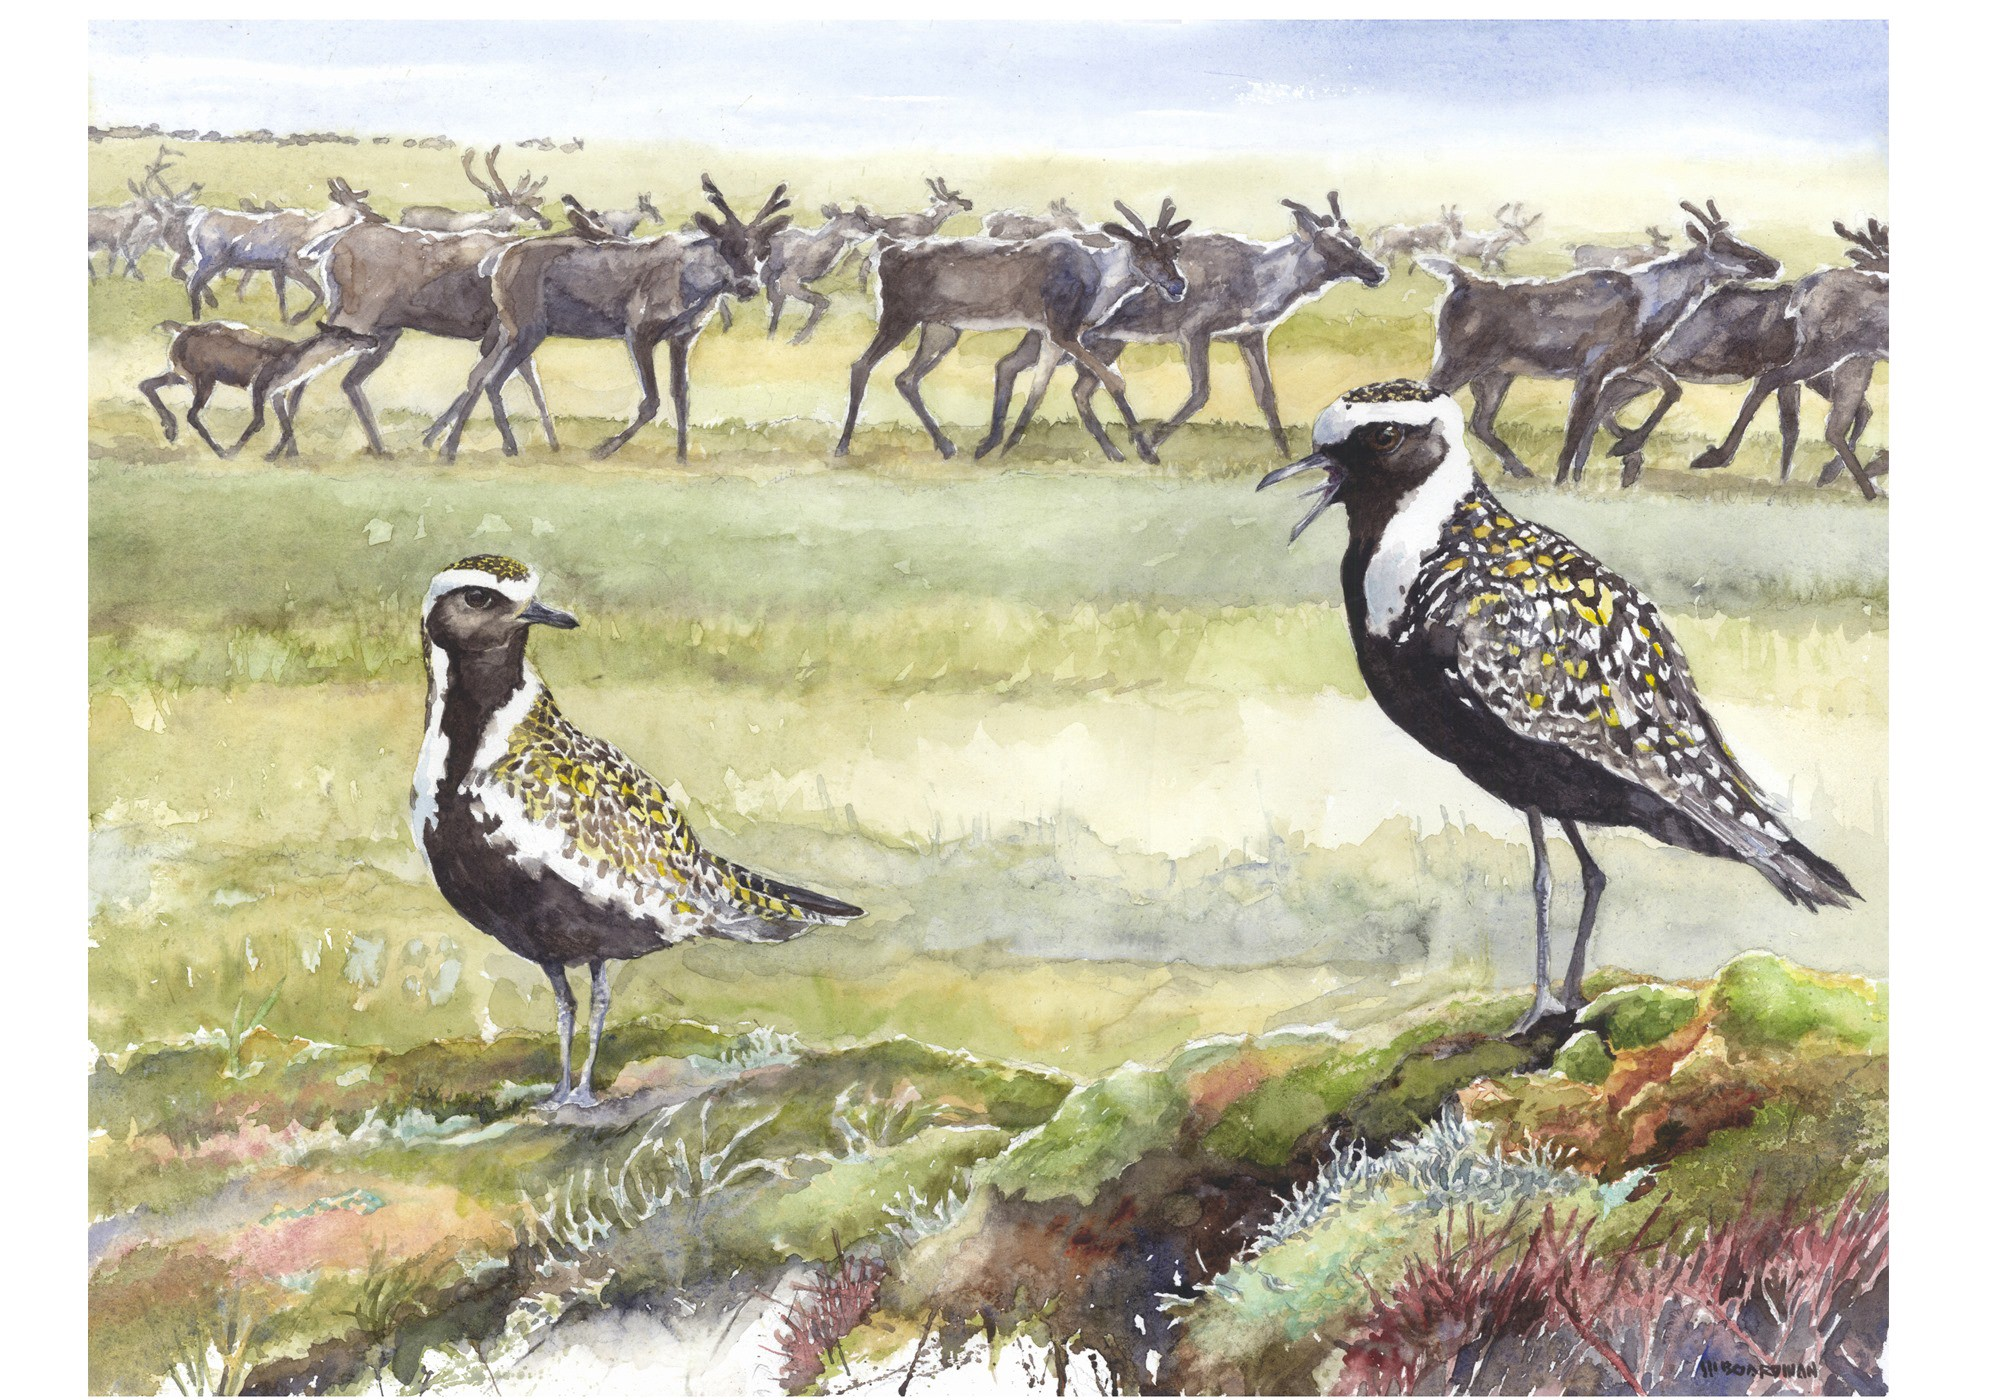 two shorbirds in the foreground with a heard of caribou in the background